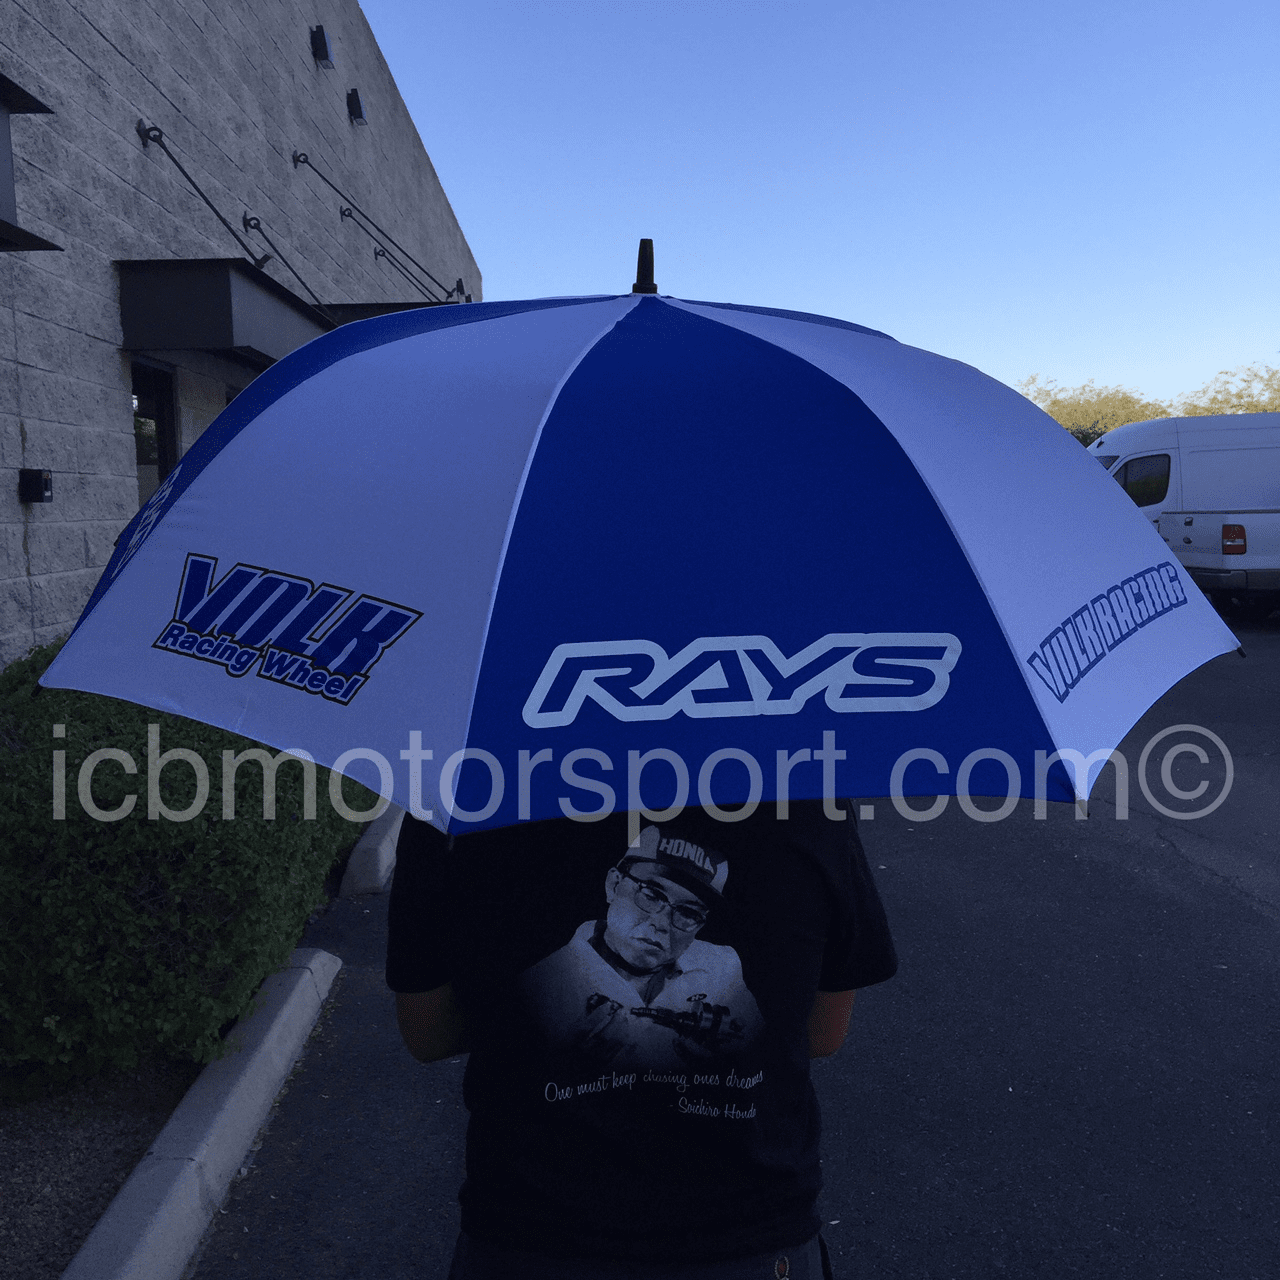 RAYS Volk Racing golf Umbrella